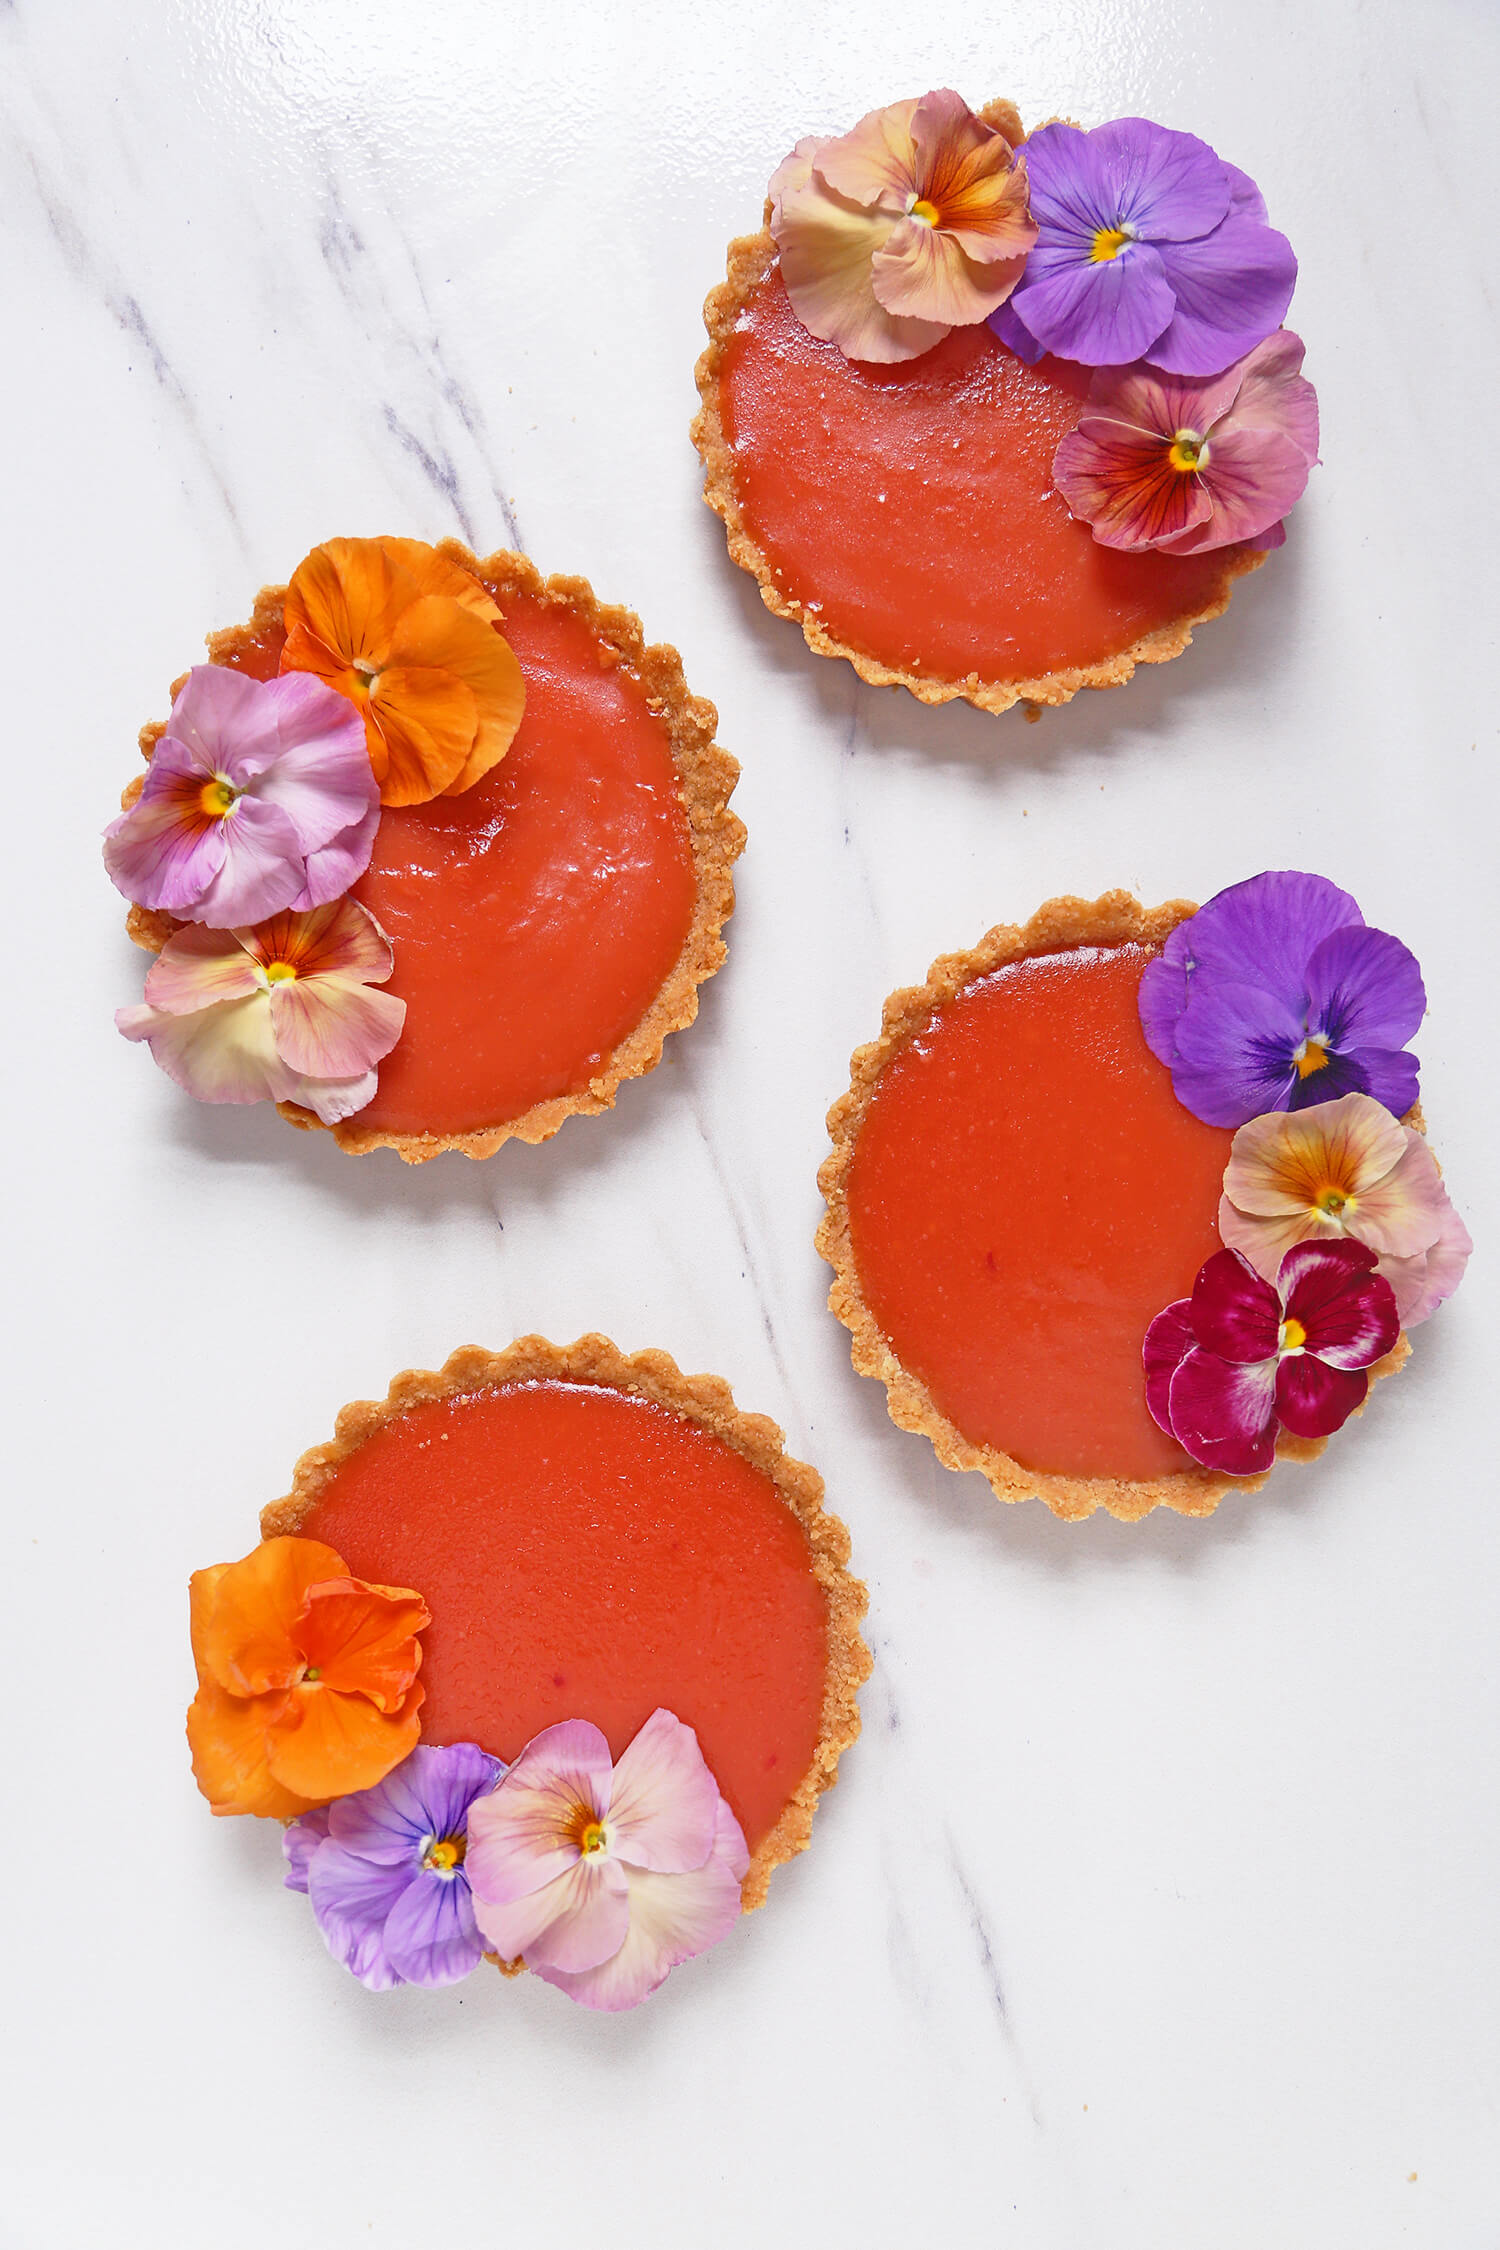 Blood Orange Negroni Tartlets